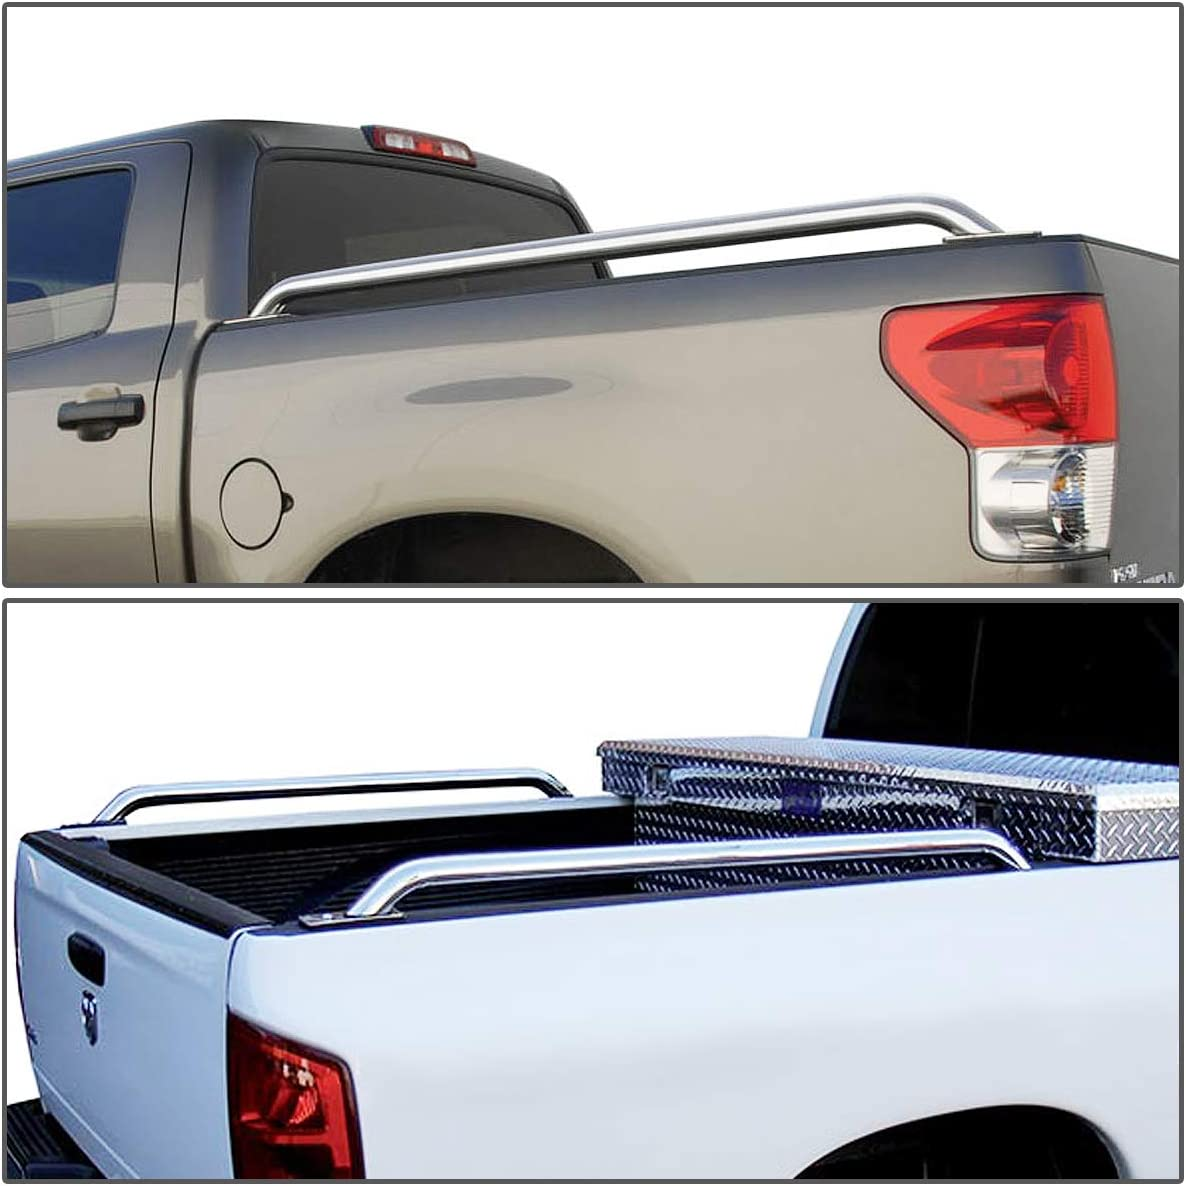 DNA MOTORING RAIL-005-SS Pair of Truck Rails for 99-00 Chevy GMC Dodge 1500 2500 3500 8ft Bed